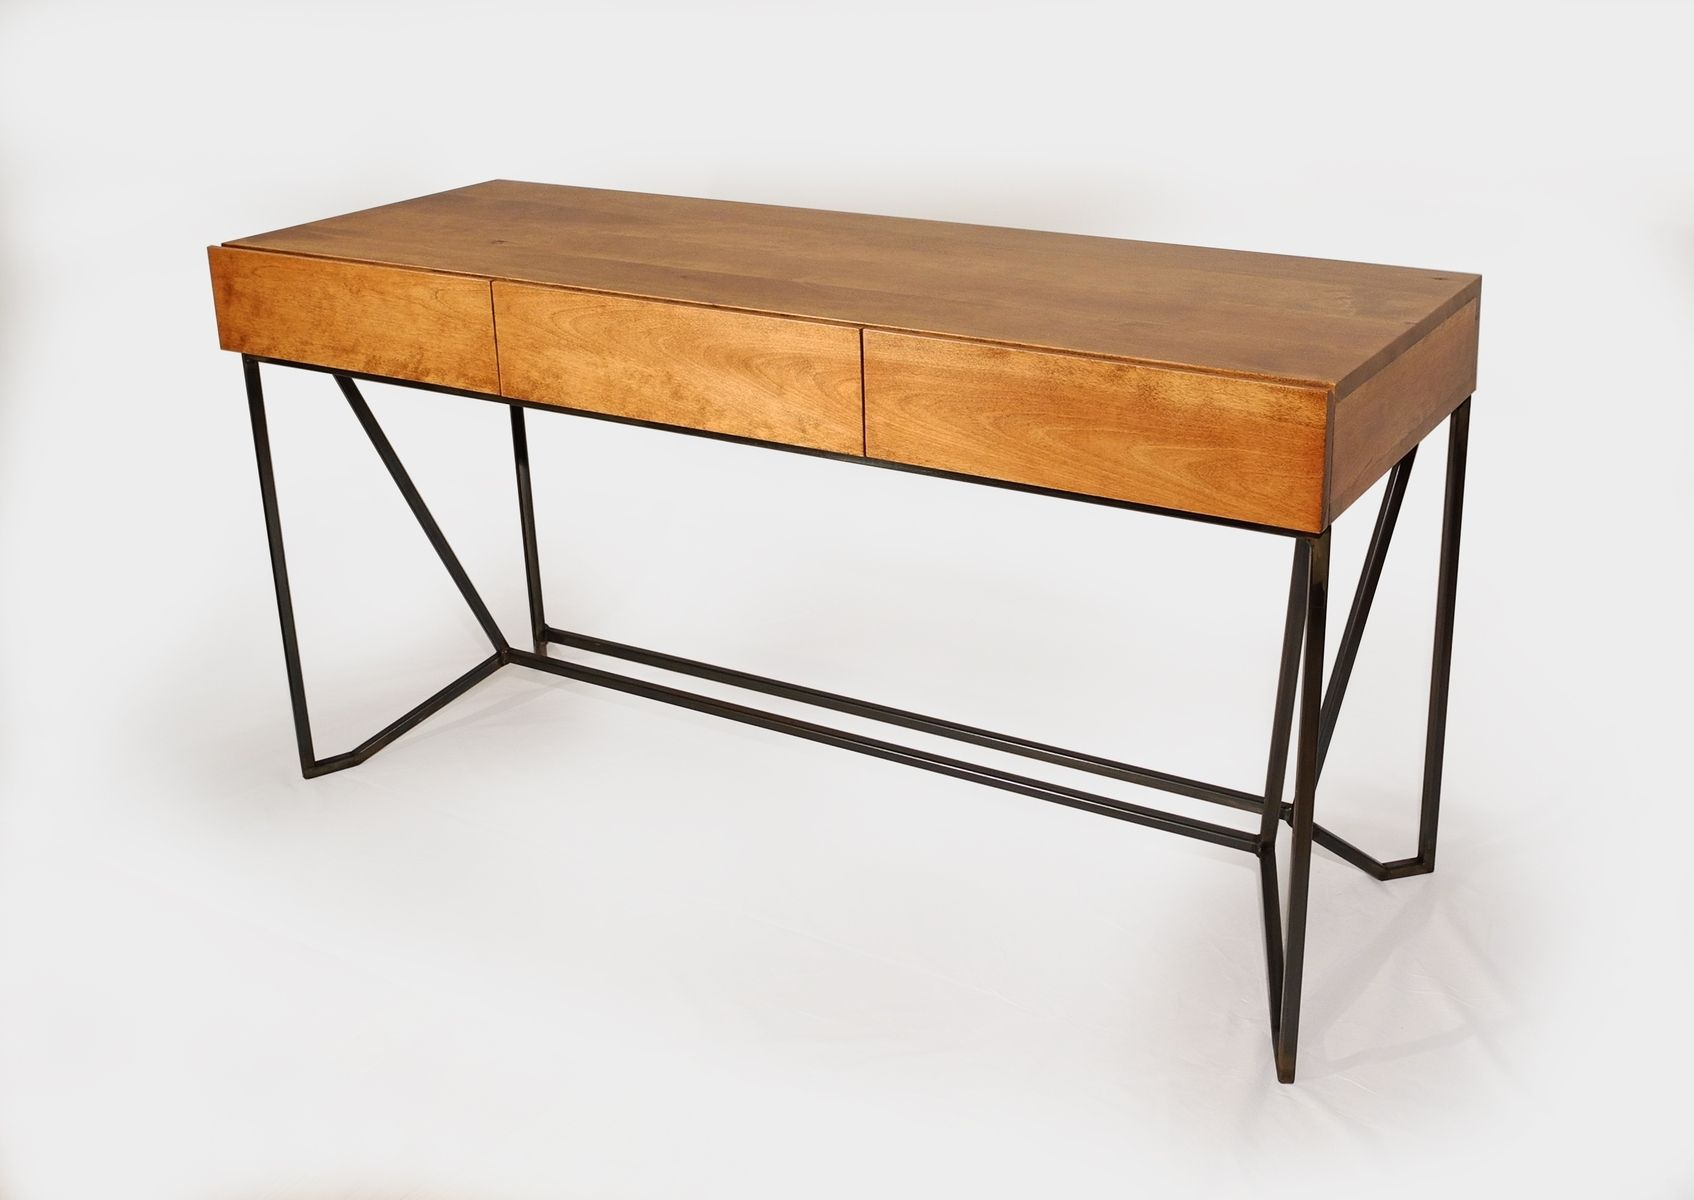 Hand Crafted Modern Industrial 3 Drawer Desk By